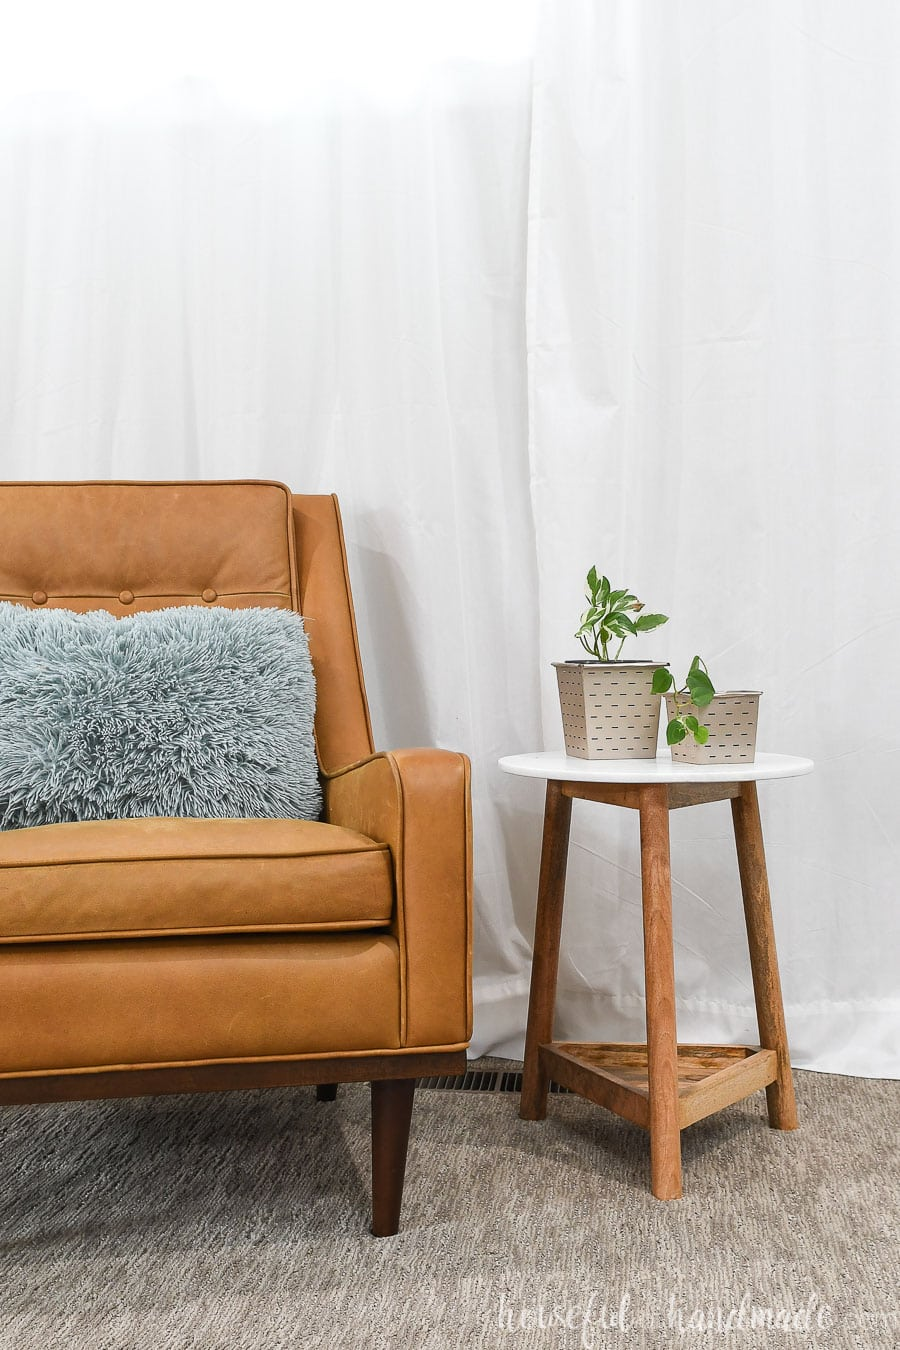 Living room with chair and end table holding houseplants in paper flower pots.